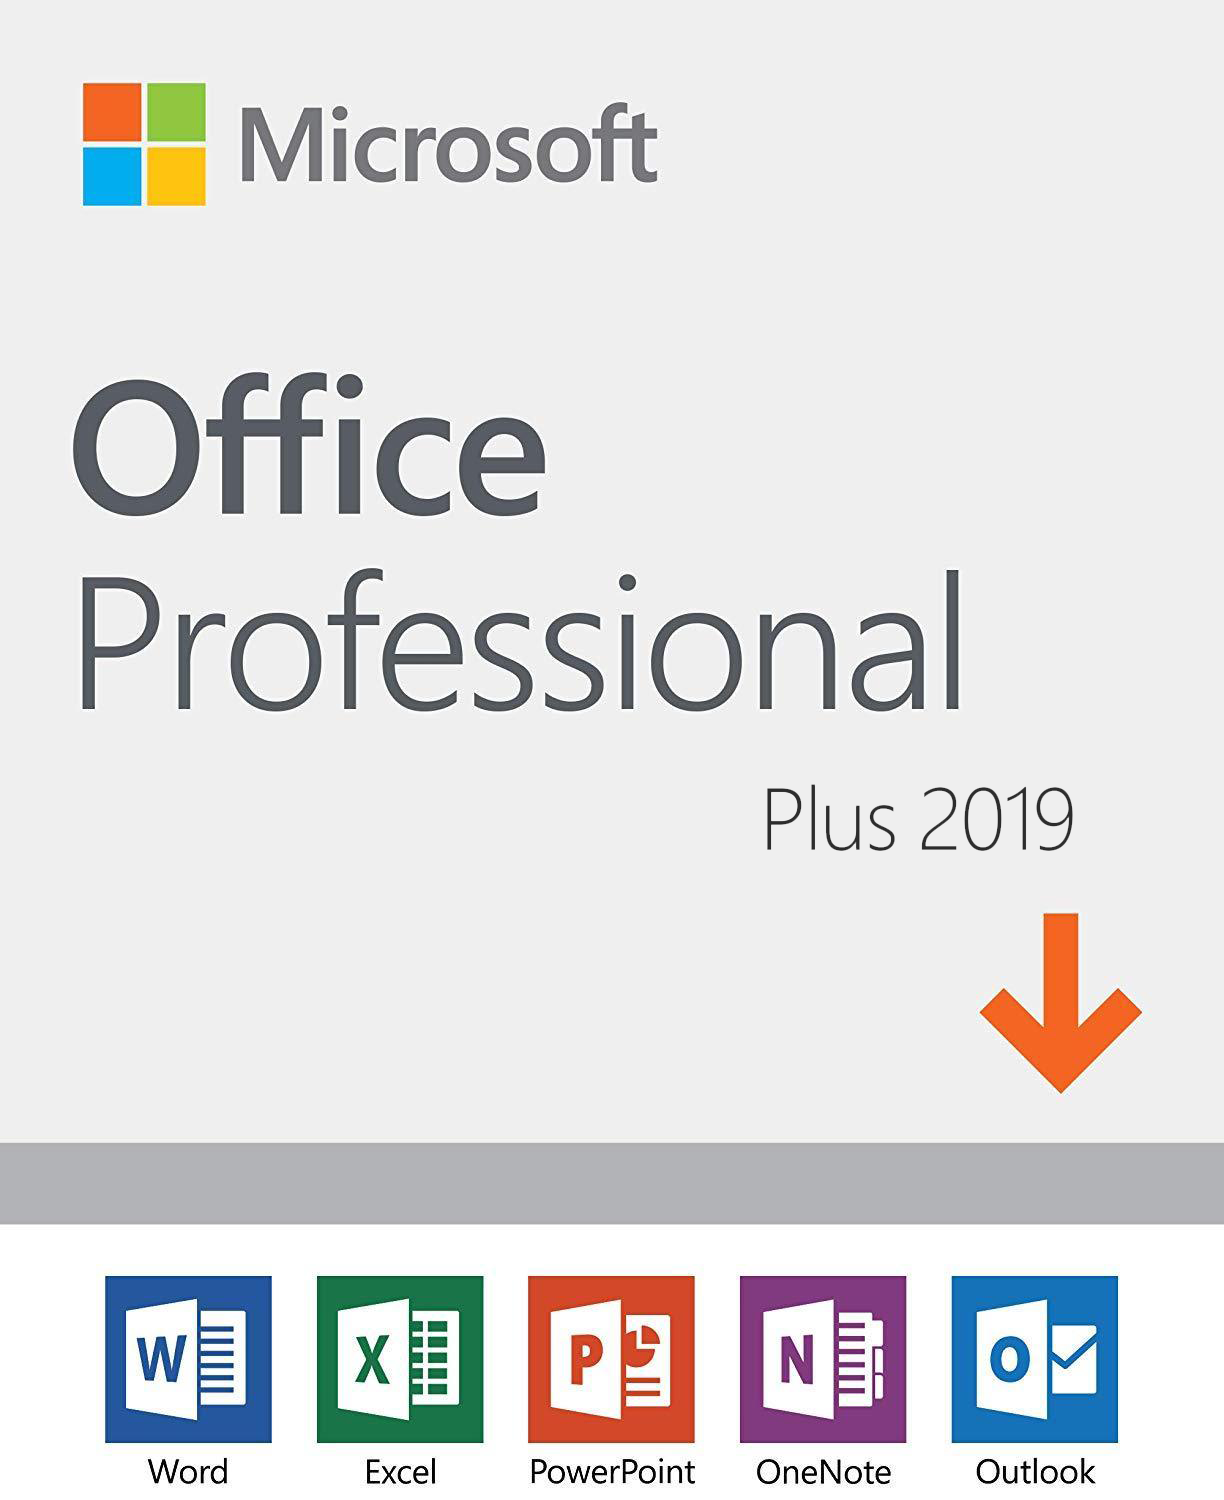 MS Office Home and Student 2019 license